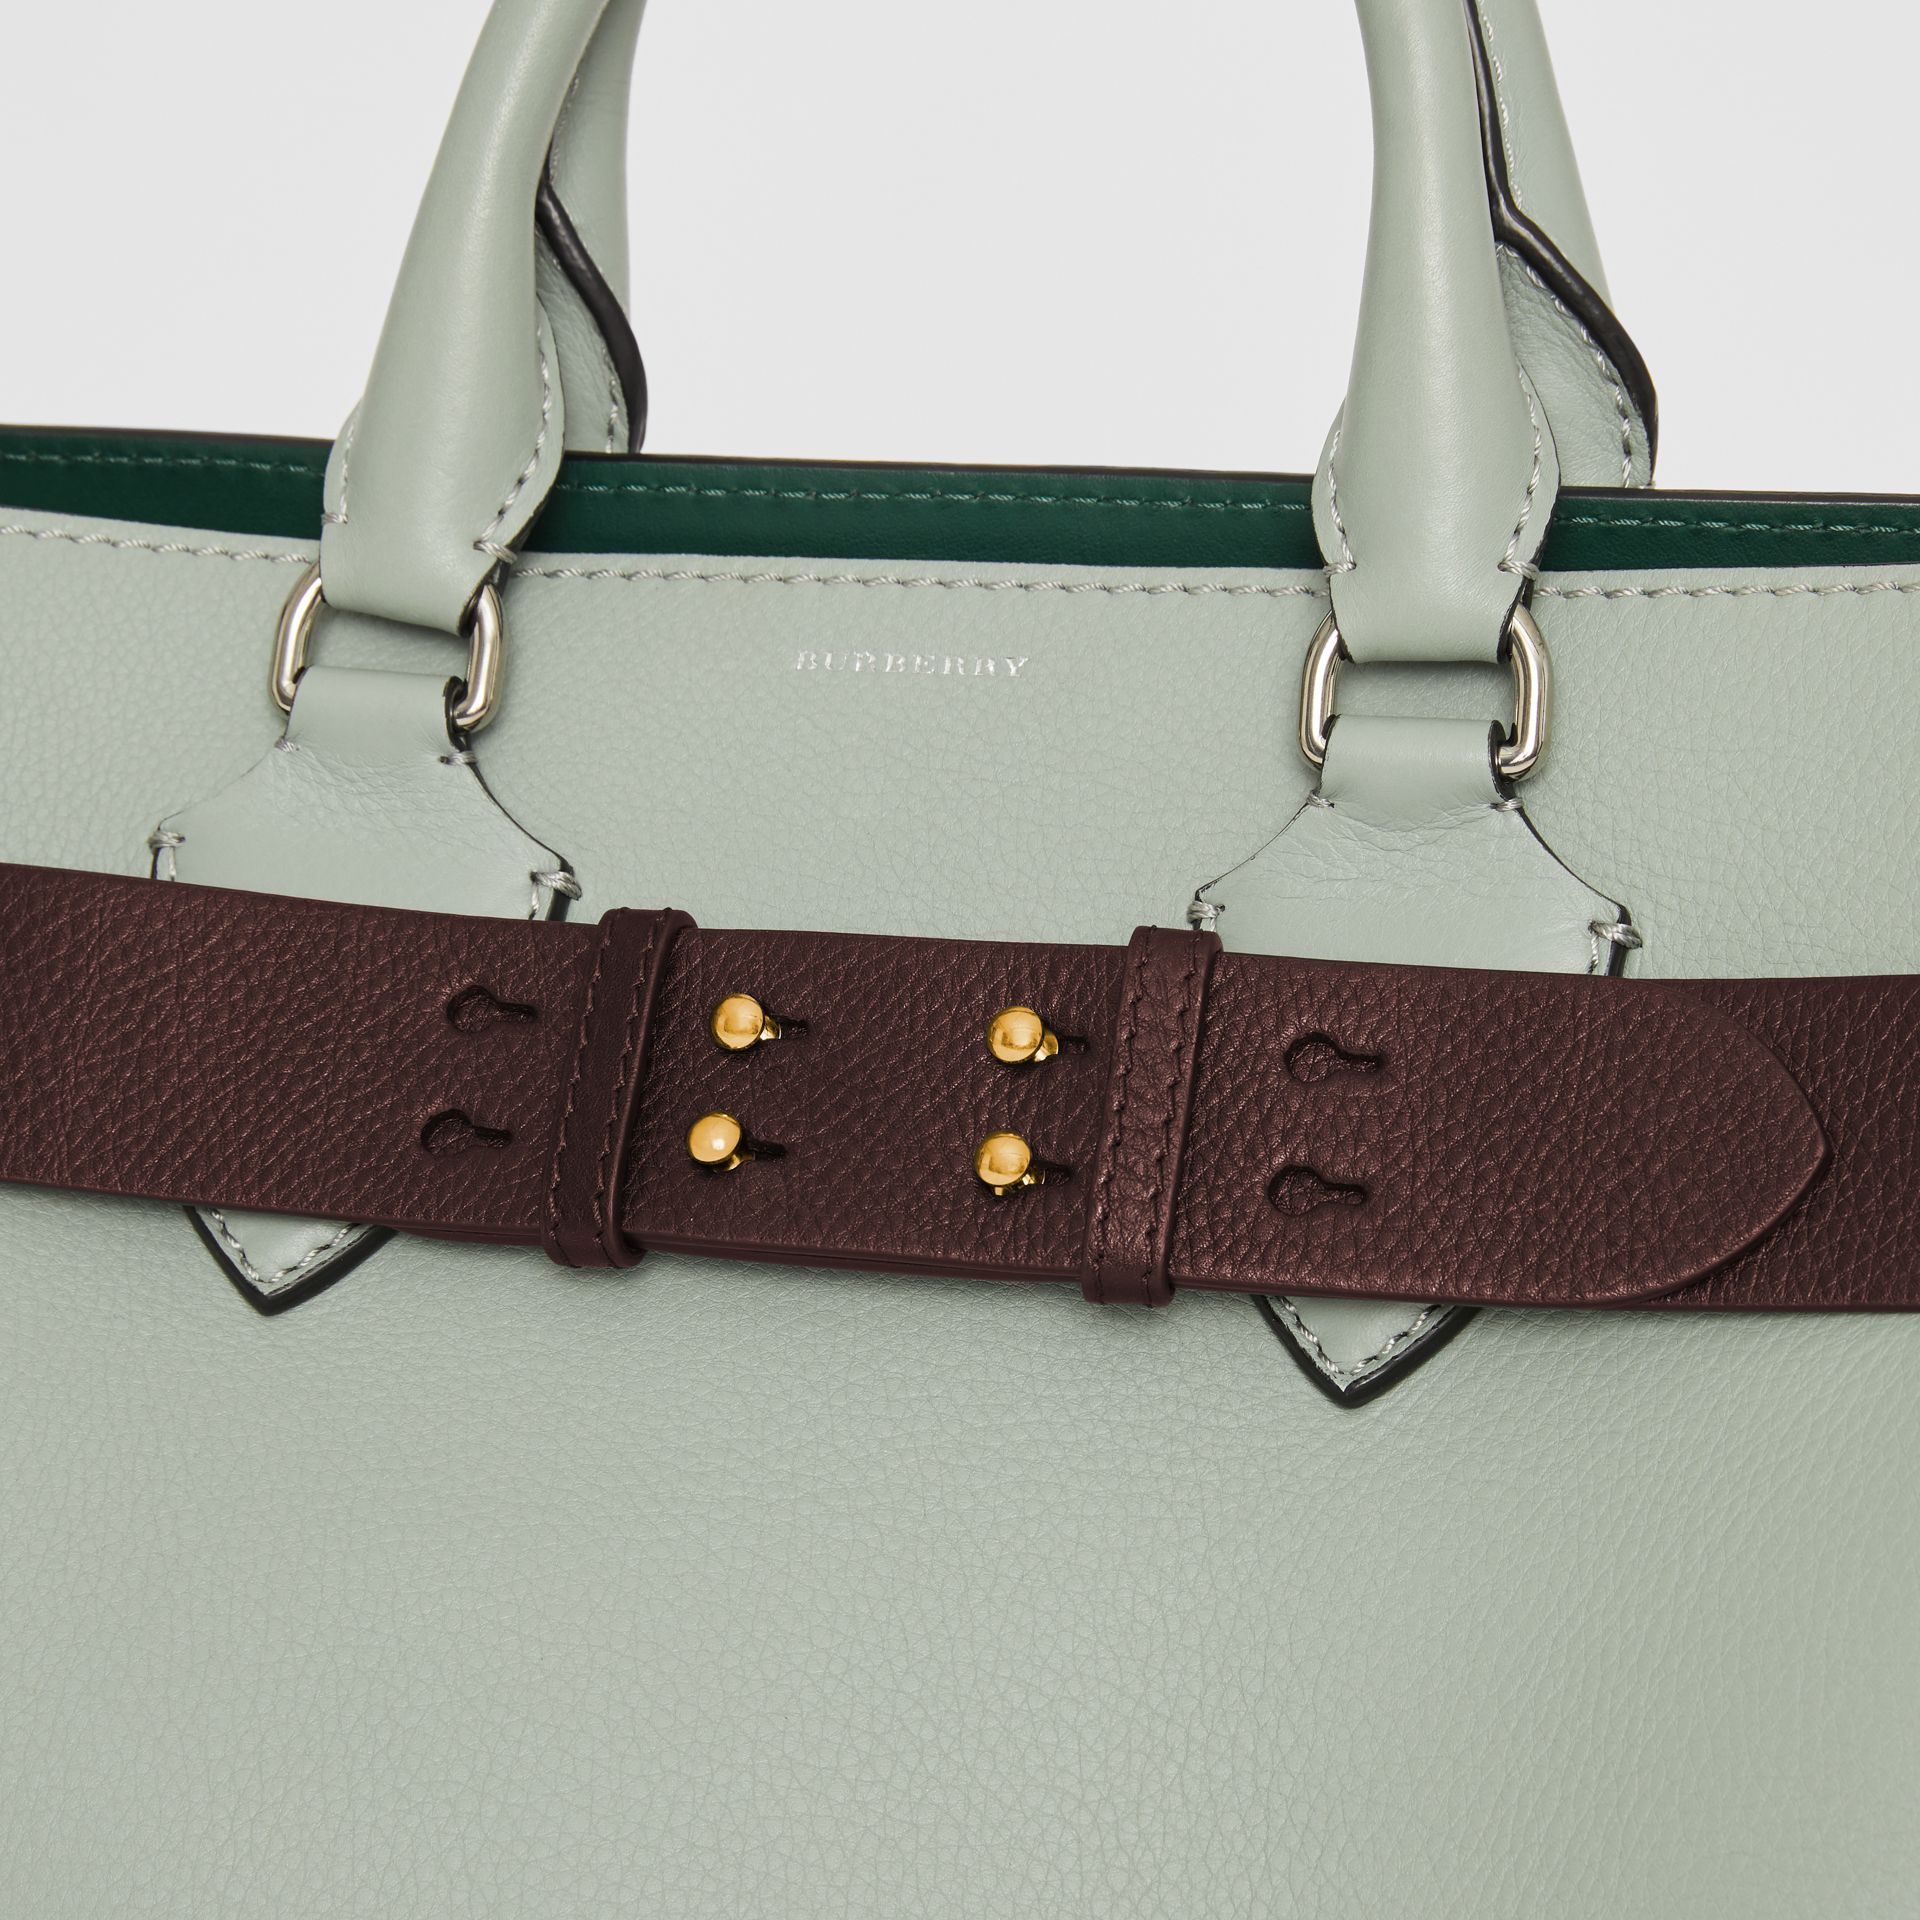 Ceinture en cuir grainé pour petit sac The Belt (Bordeaux Intense) - Femme | Burberry Canada - photo de la galerie 1